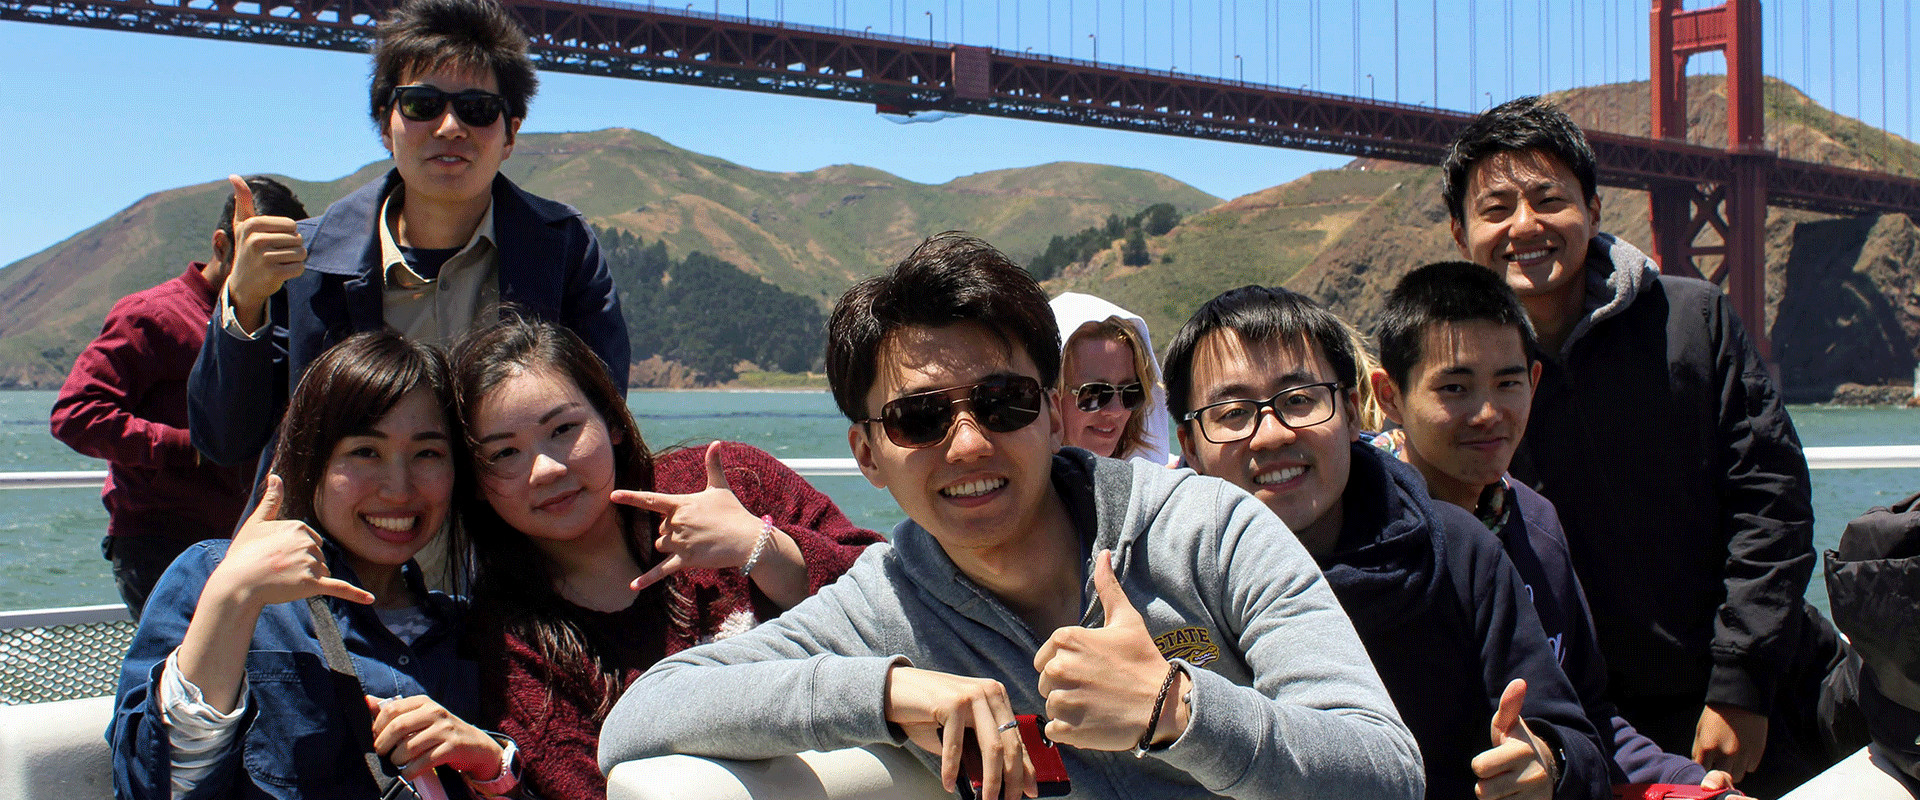 American Language Institute students on a bay cruise near San Francisco's Golden Gate Bridge